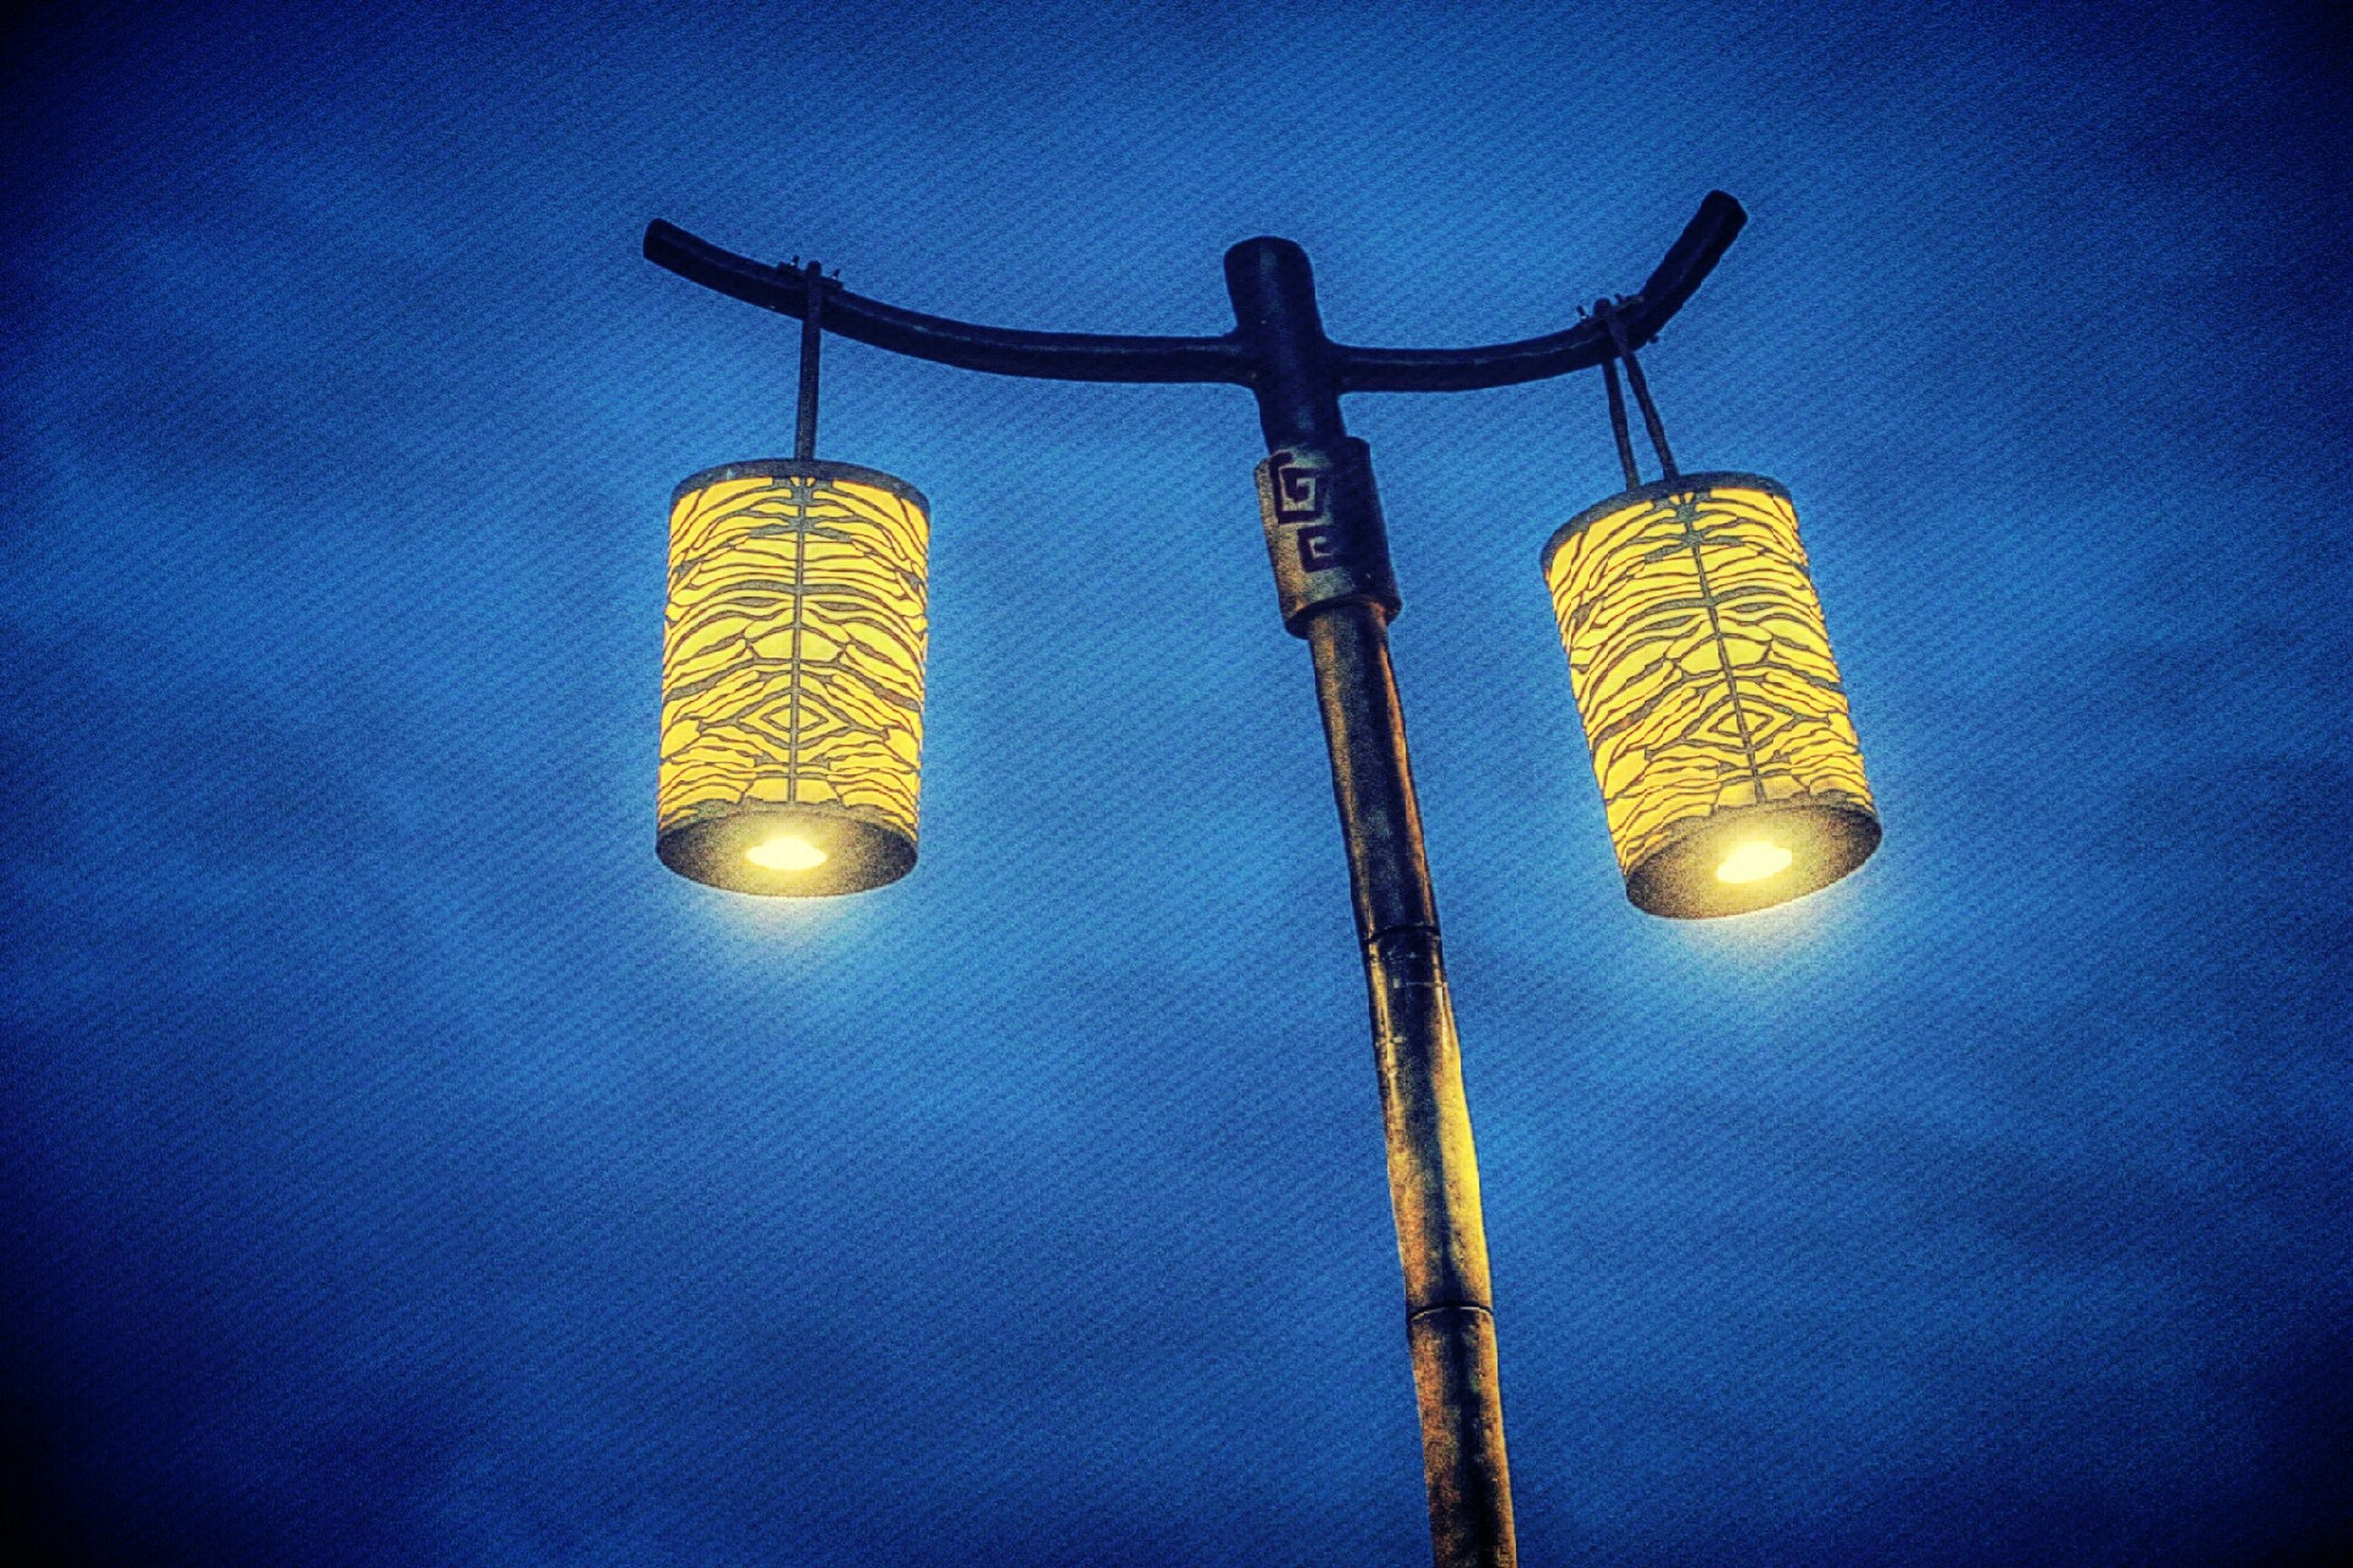 low angle view, illuminated, lighting equipment, electricity, hanging, electric light, street light, light bulb, glowing, night, sky, blue, light - natural phenomenon, decoration, electric lamp, close-up, no people, technology, lantern, metal